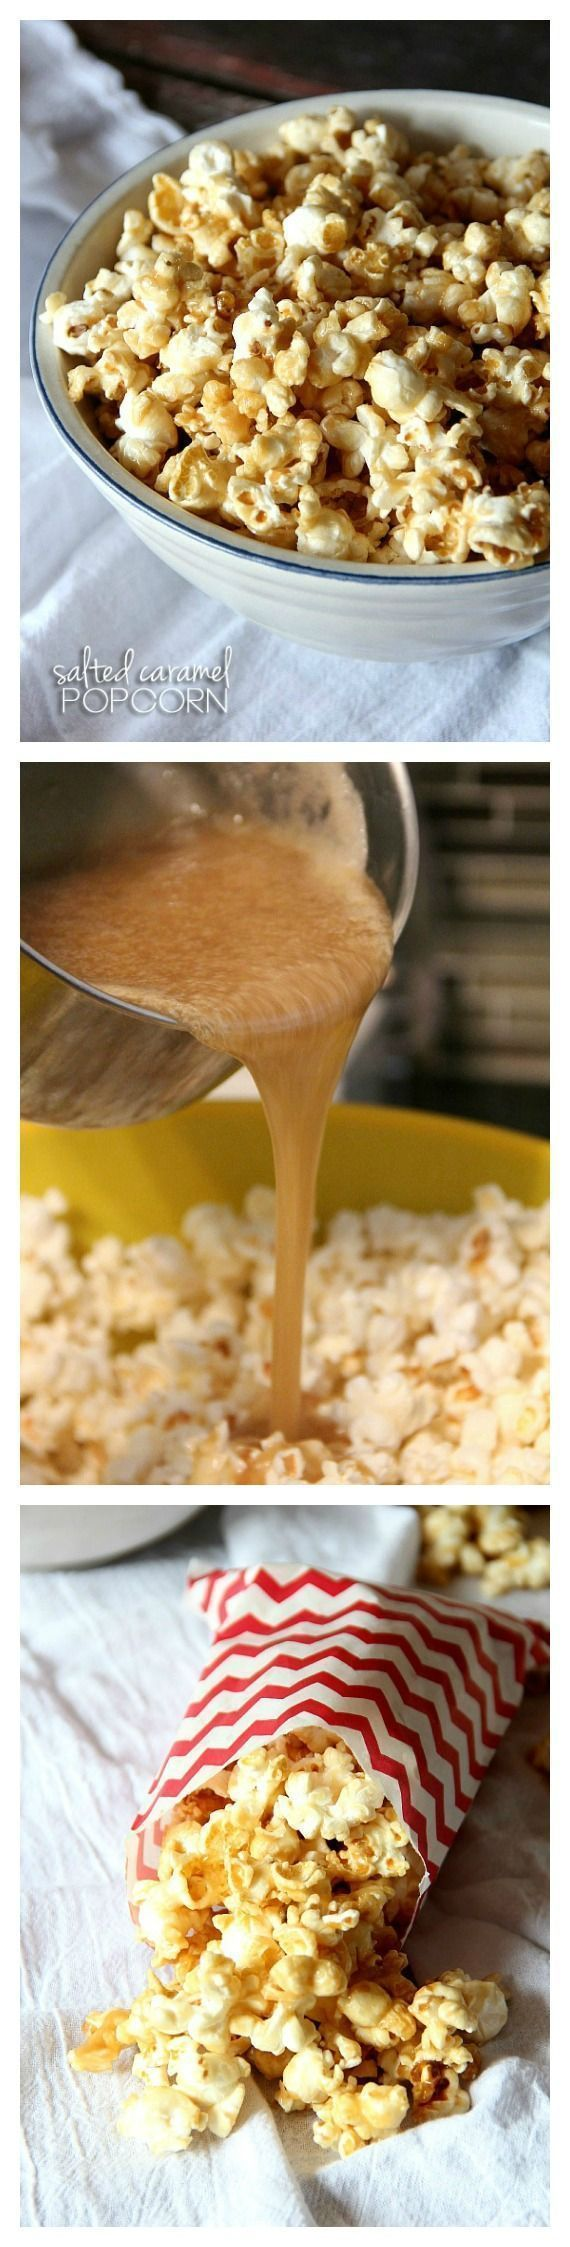 Salted Caramel Popcorn..the only caramel popcorn recipe you'll ever need!!! | Posted By: DebbieNet.com